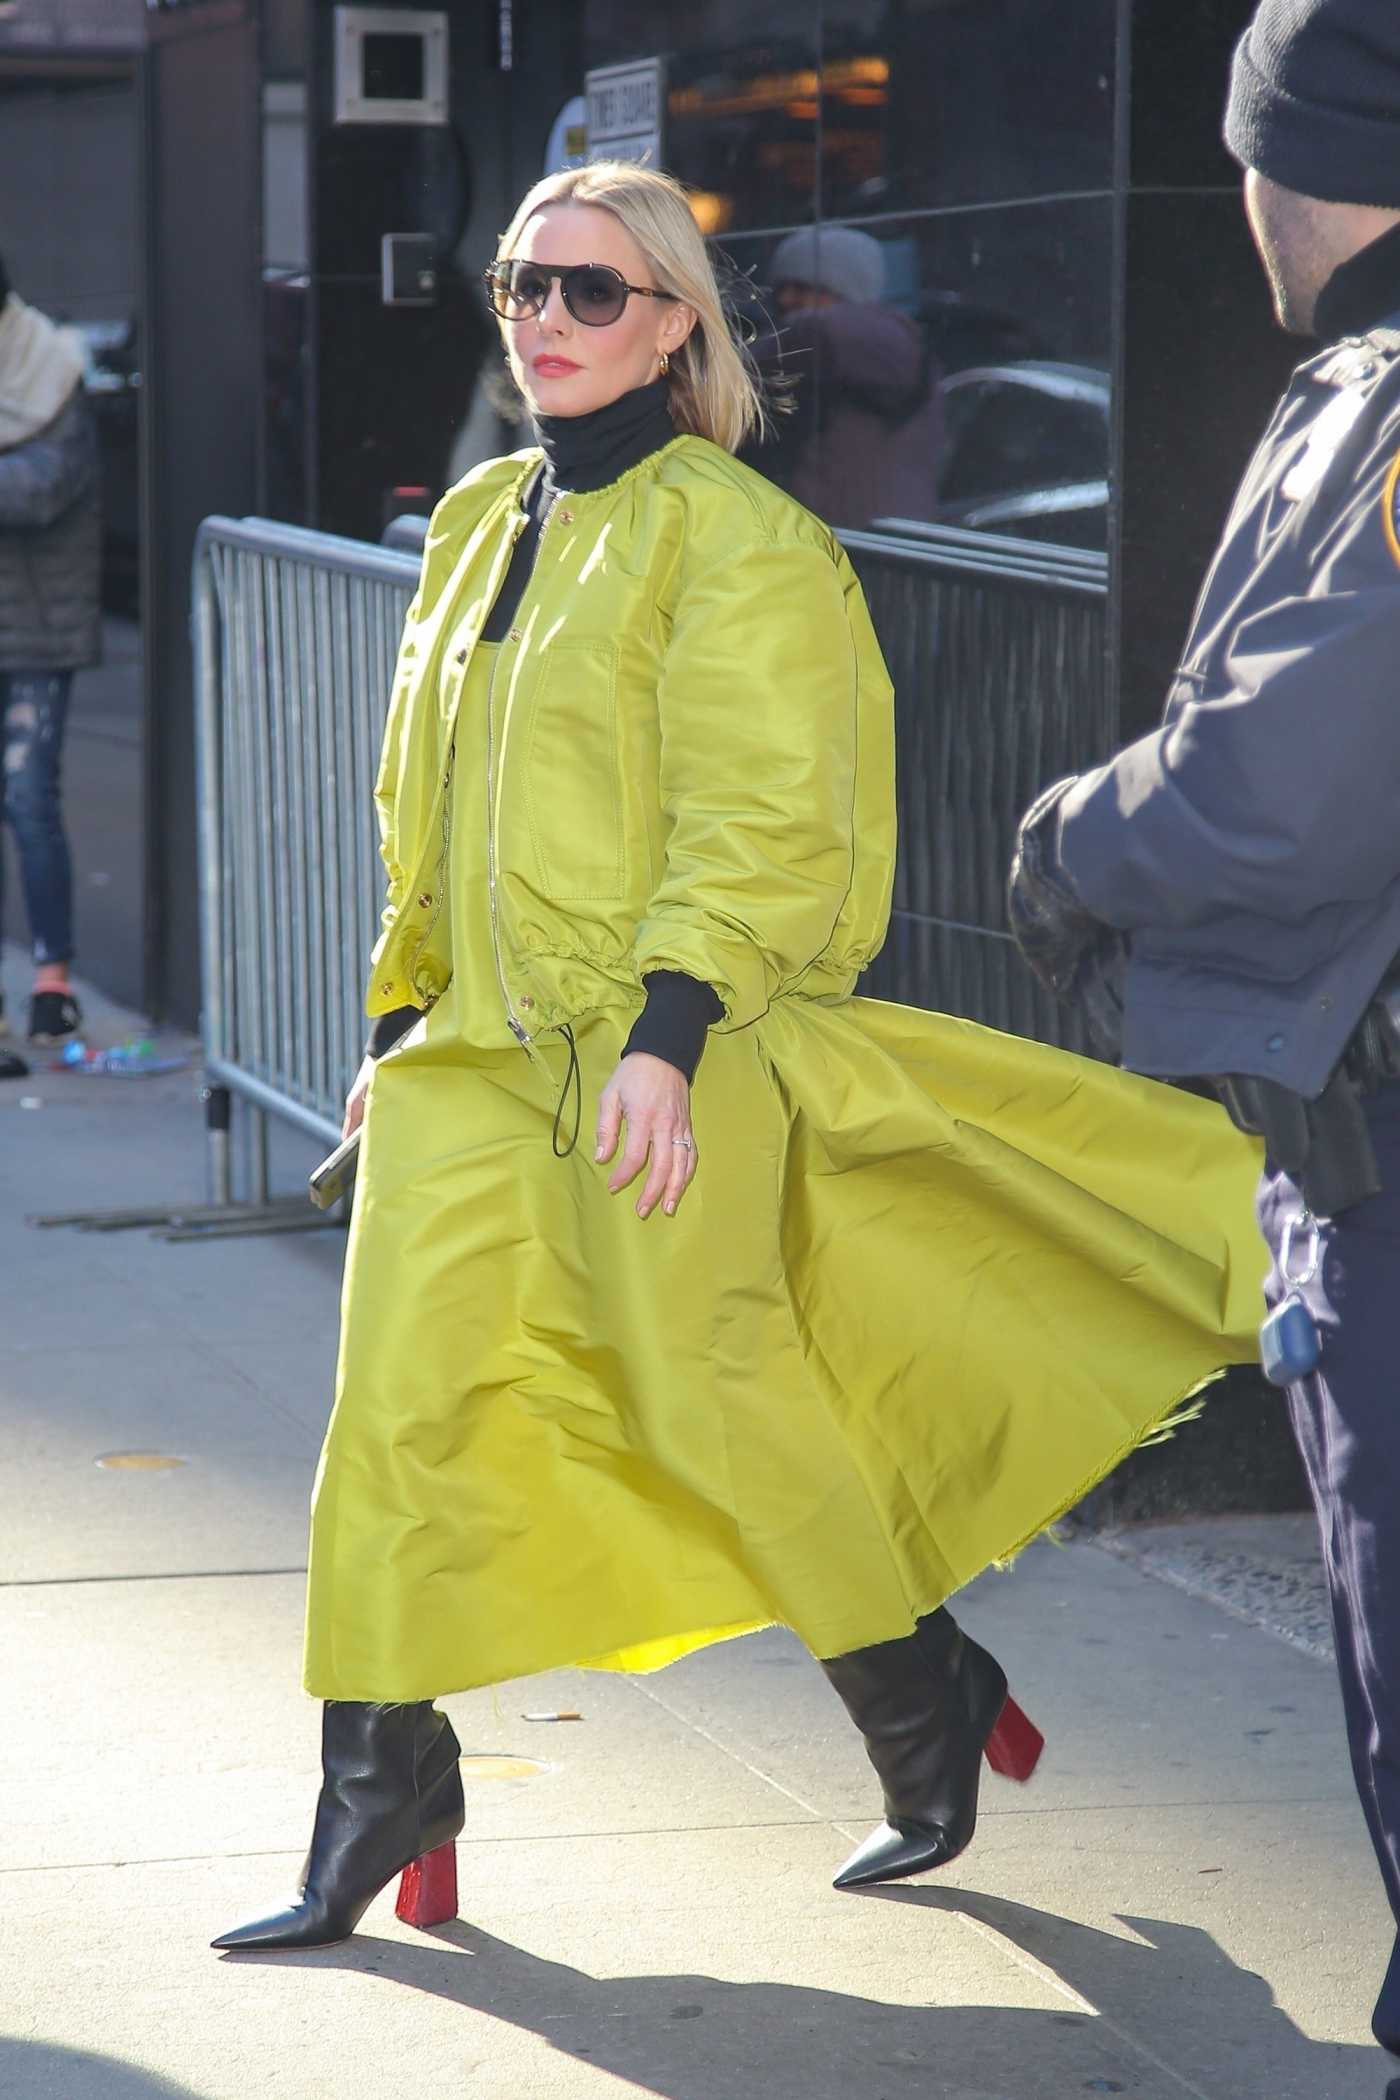 Kristen Bell in a Neon Green Outfit Was Seen Out in New York 02/21/2020